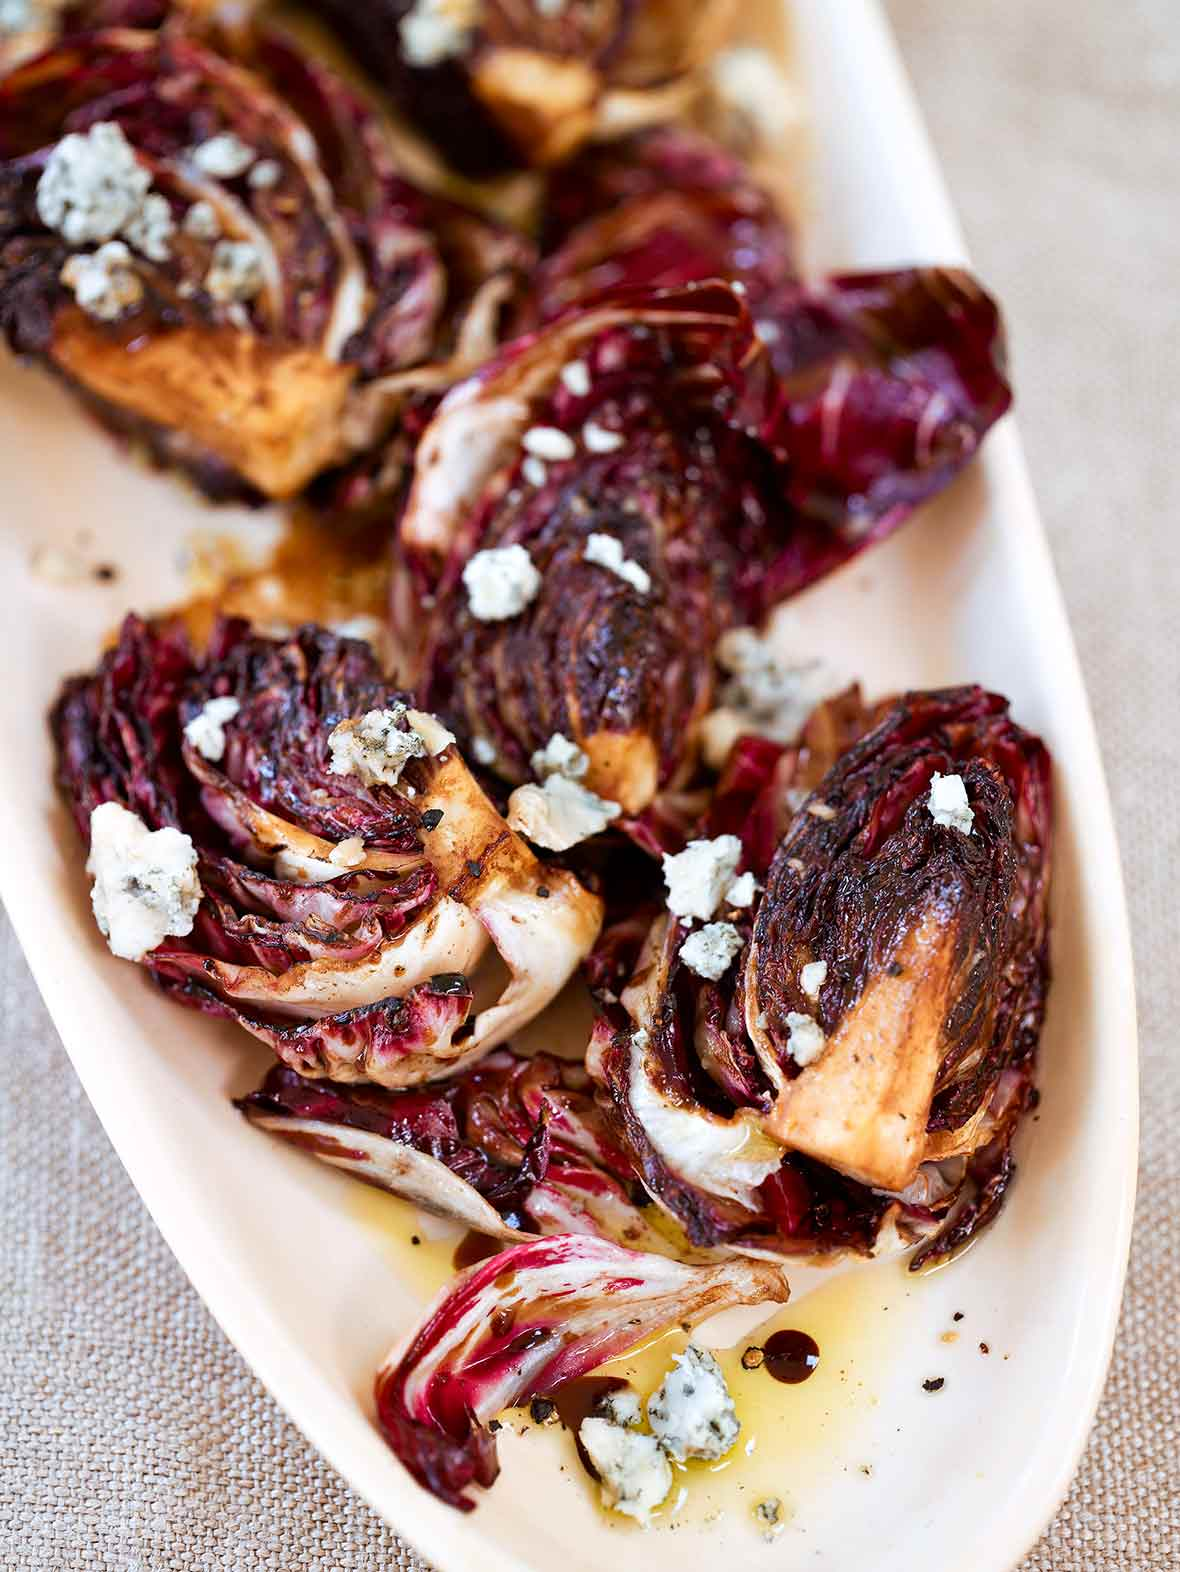 Oval plate with a grilled radicchio salad, Gorgonzola, and balsamic vinaigrette